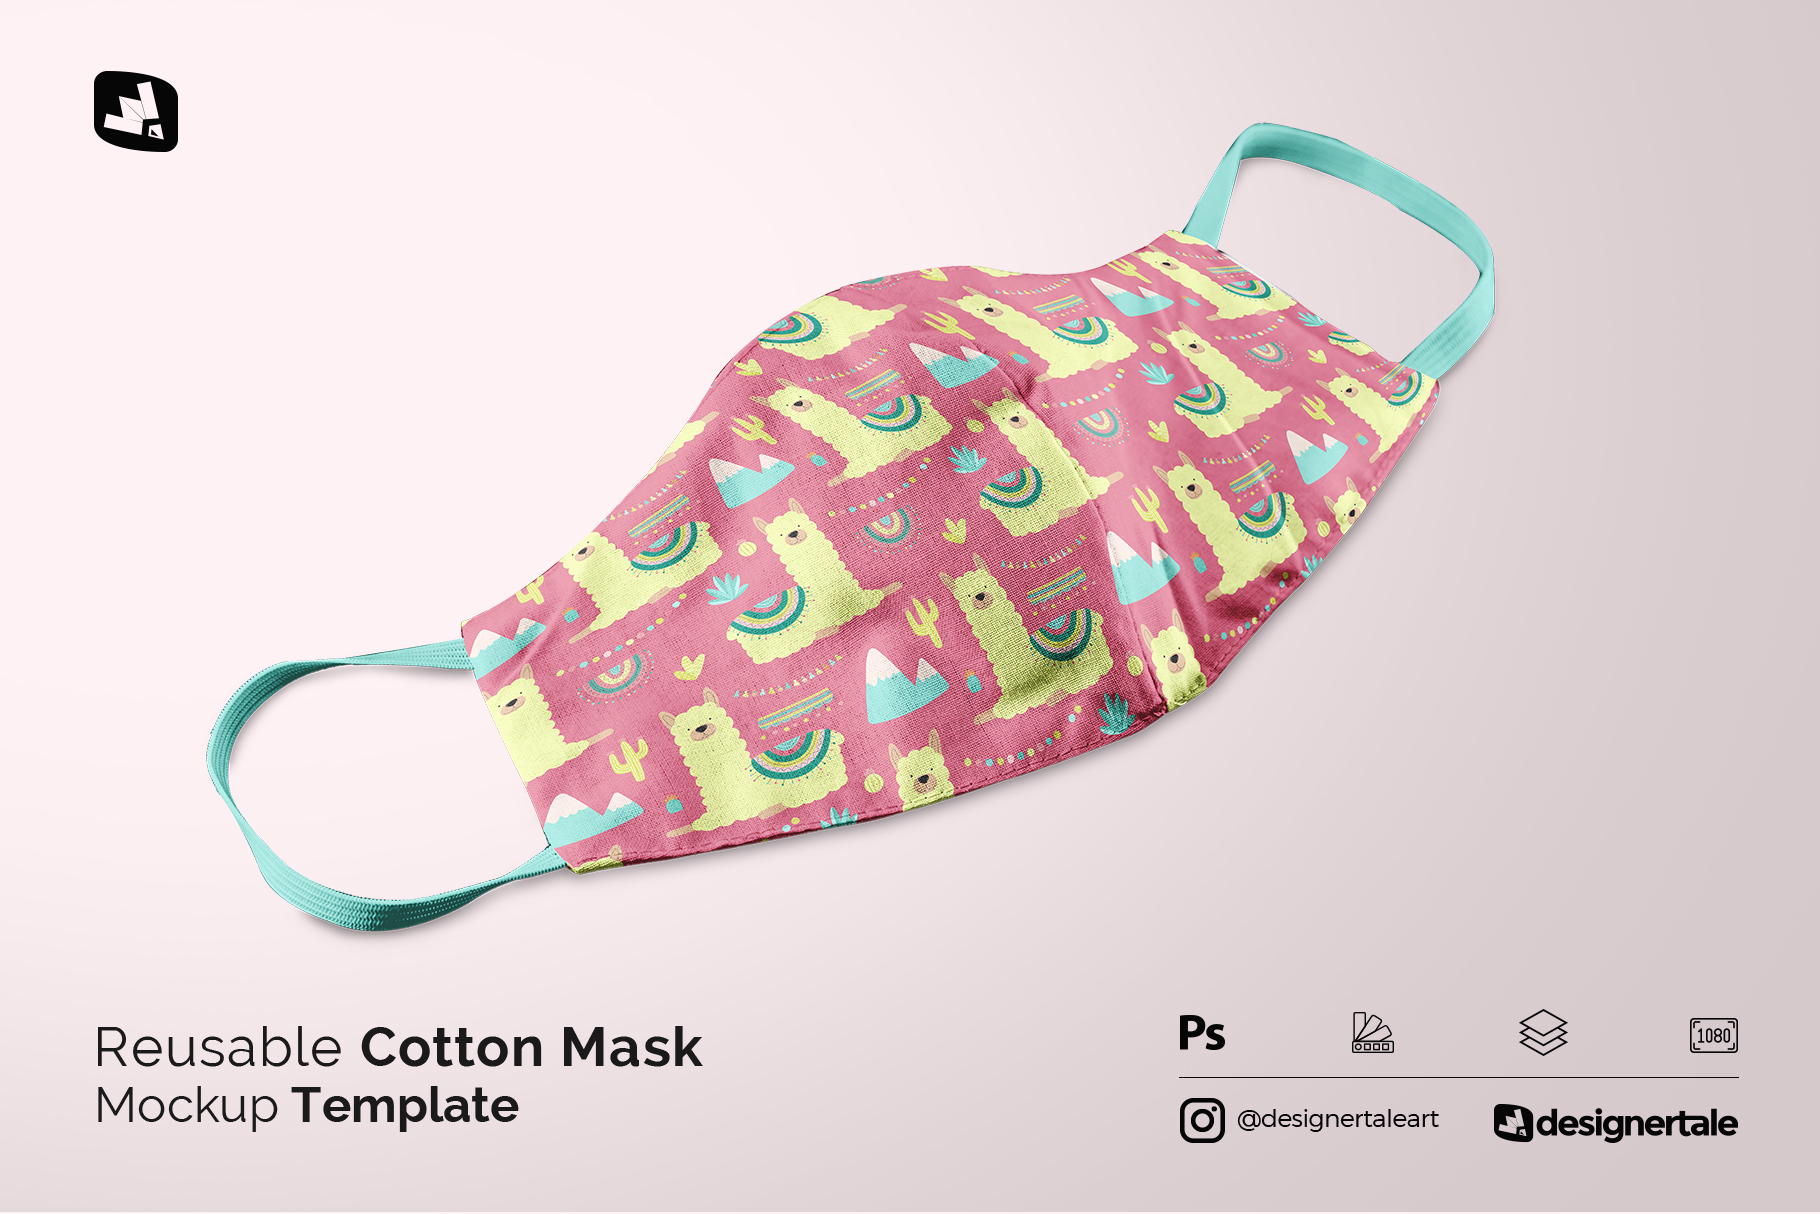 reusable cotton mask mockup